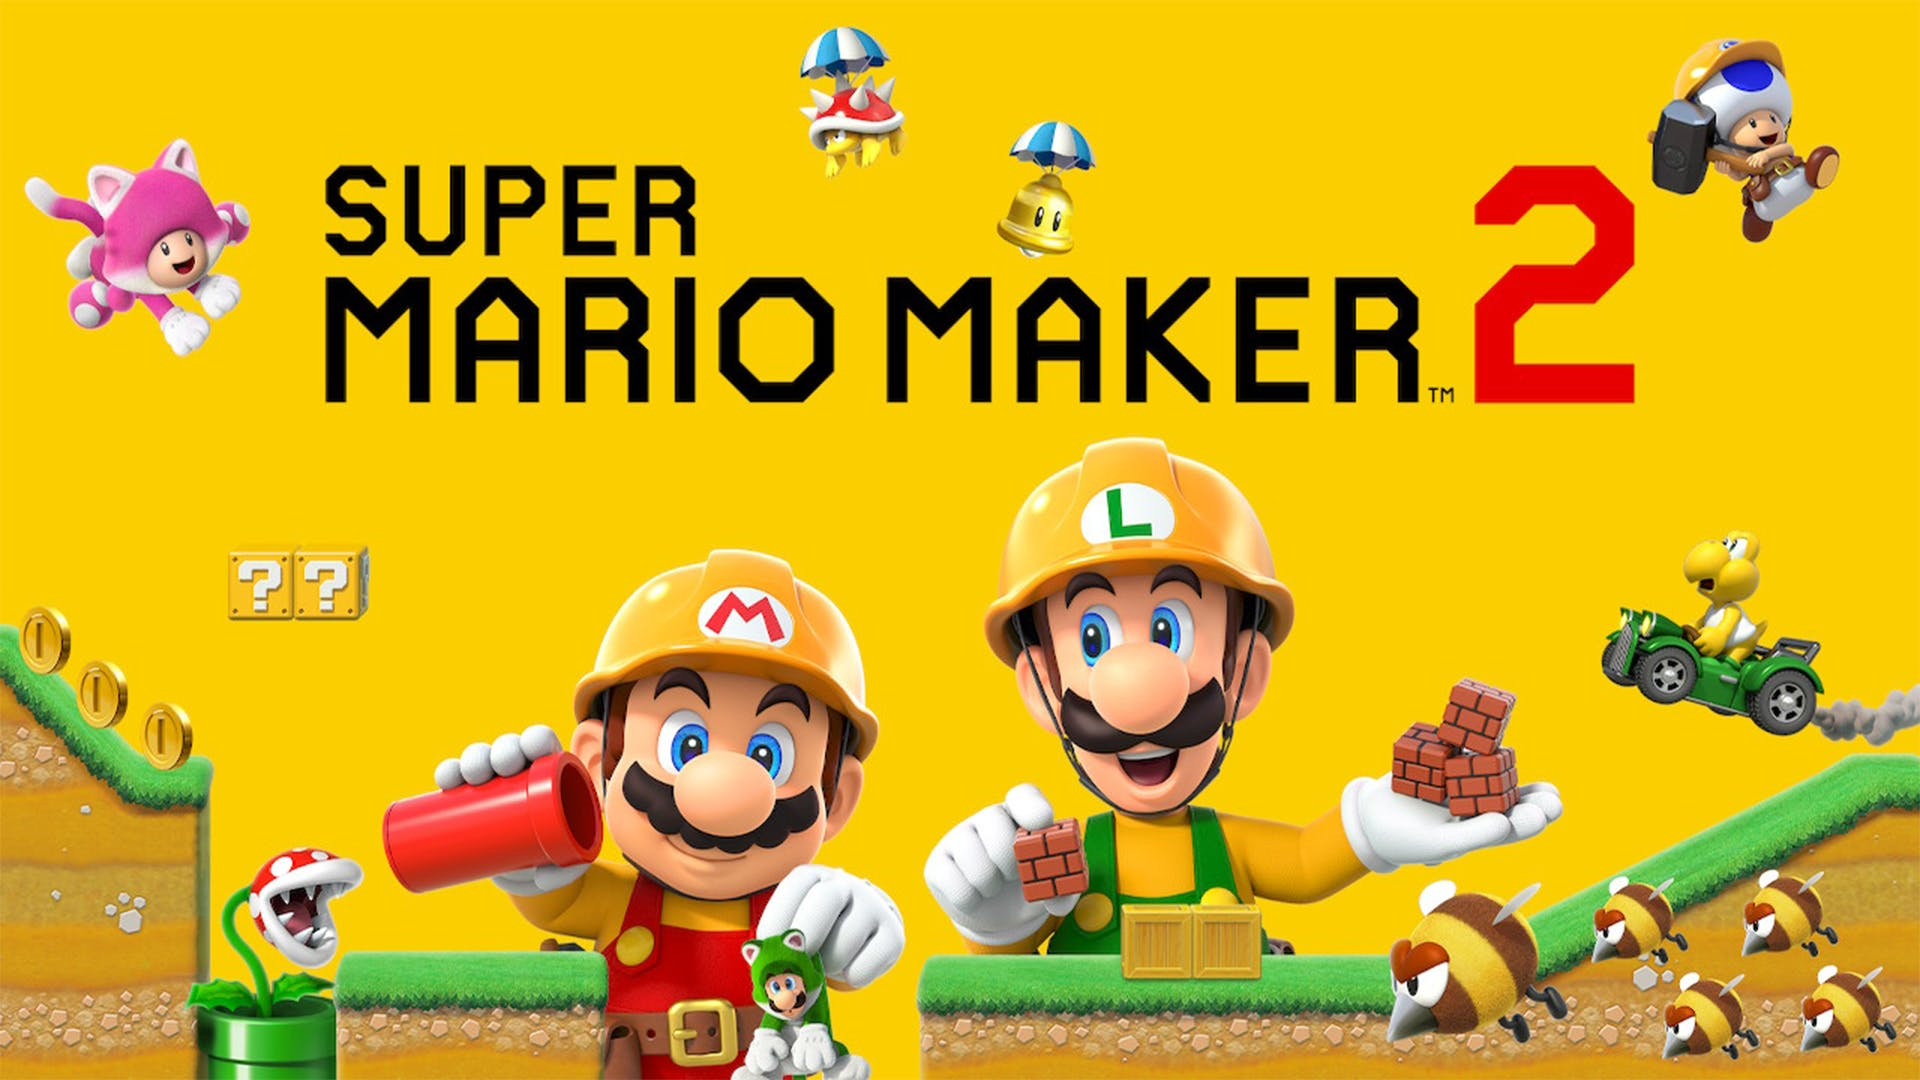 Super Mario Maker 2 Wallpapers Top Free Super Mario Maker 2